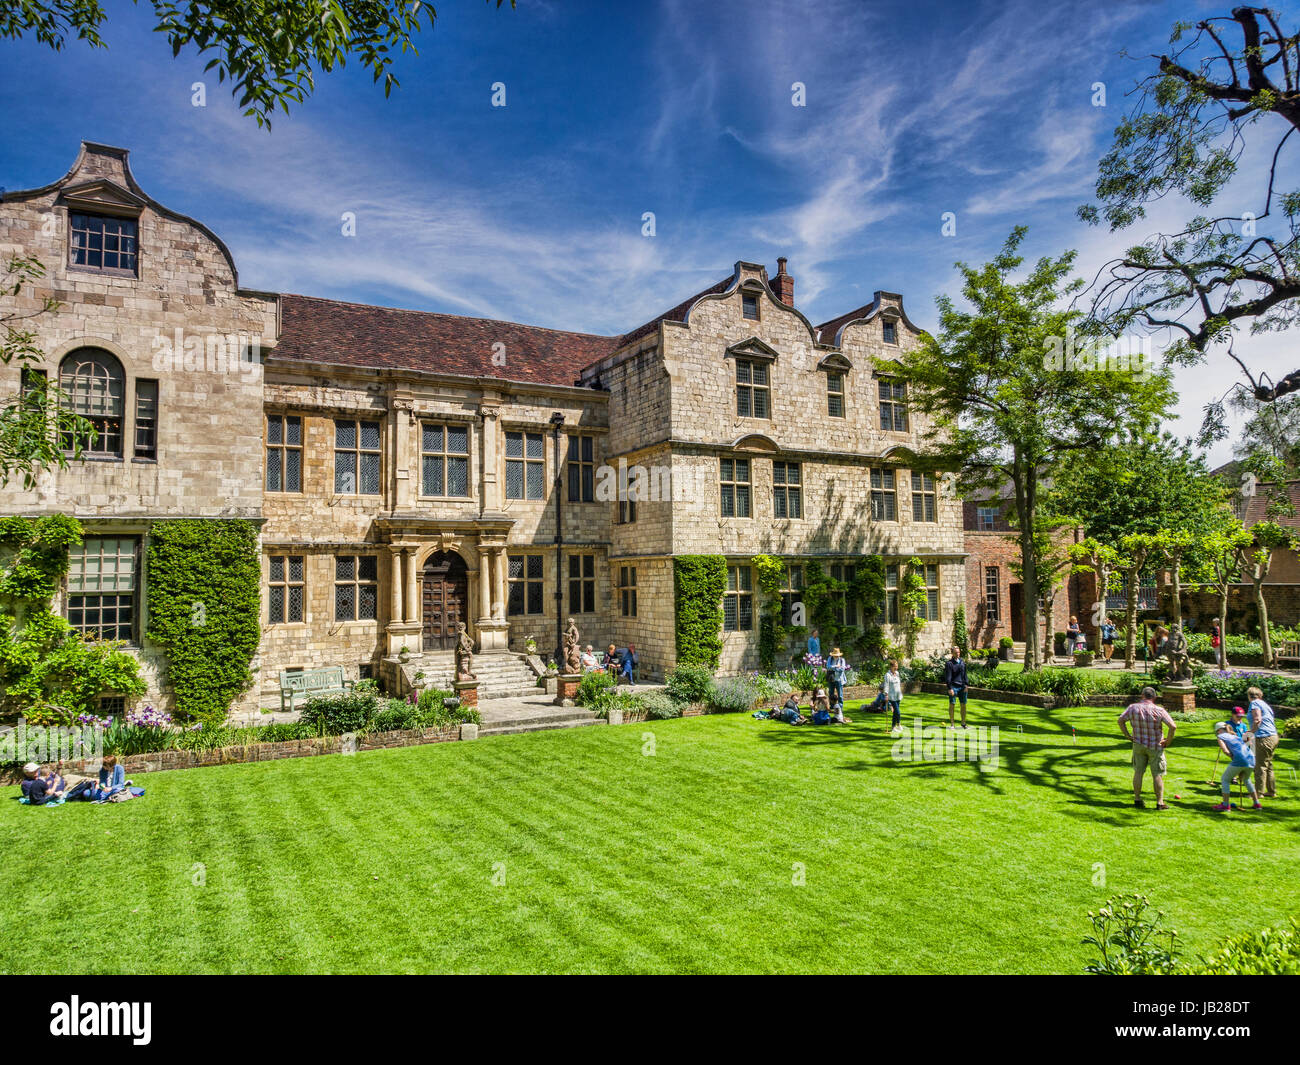 31 May 2017: York, North Yorkshire, Wngland, UK - The Treasurers House, with people playing croquet on the lawn. - Stock Image